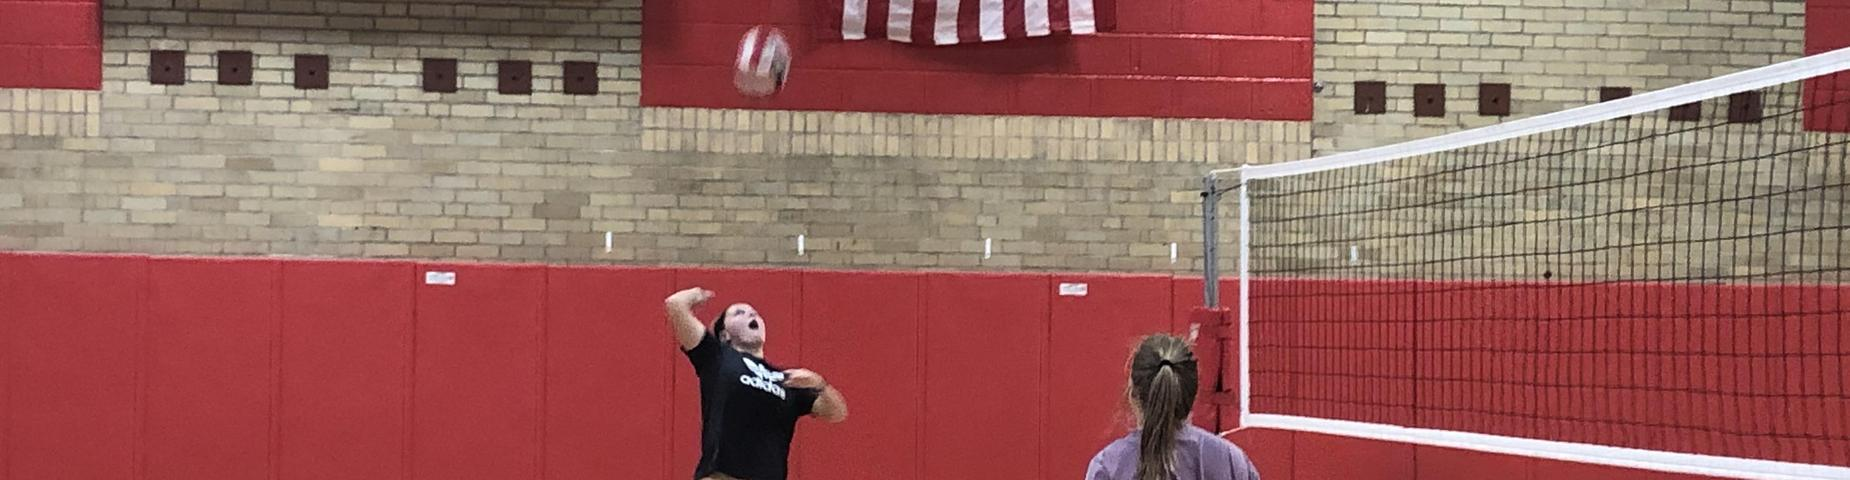 Volleyball conditioning has started.  Lady Cards are looking forward to their first game September 7th, 2020.